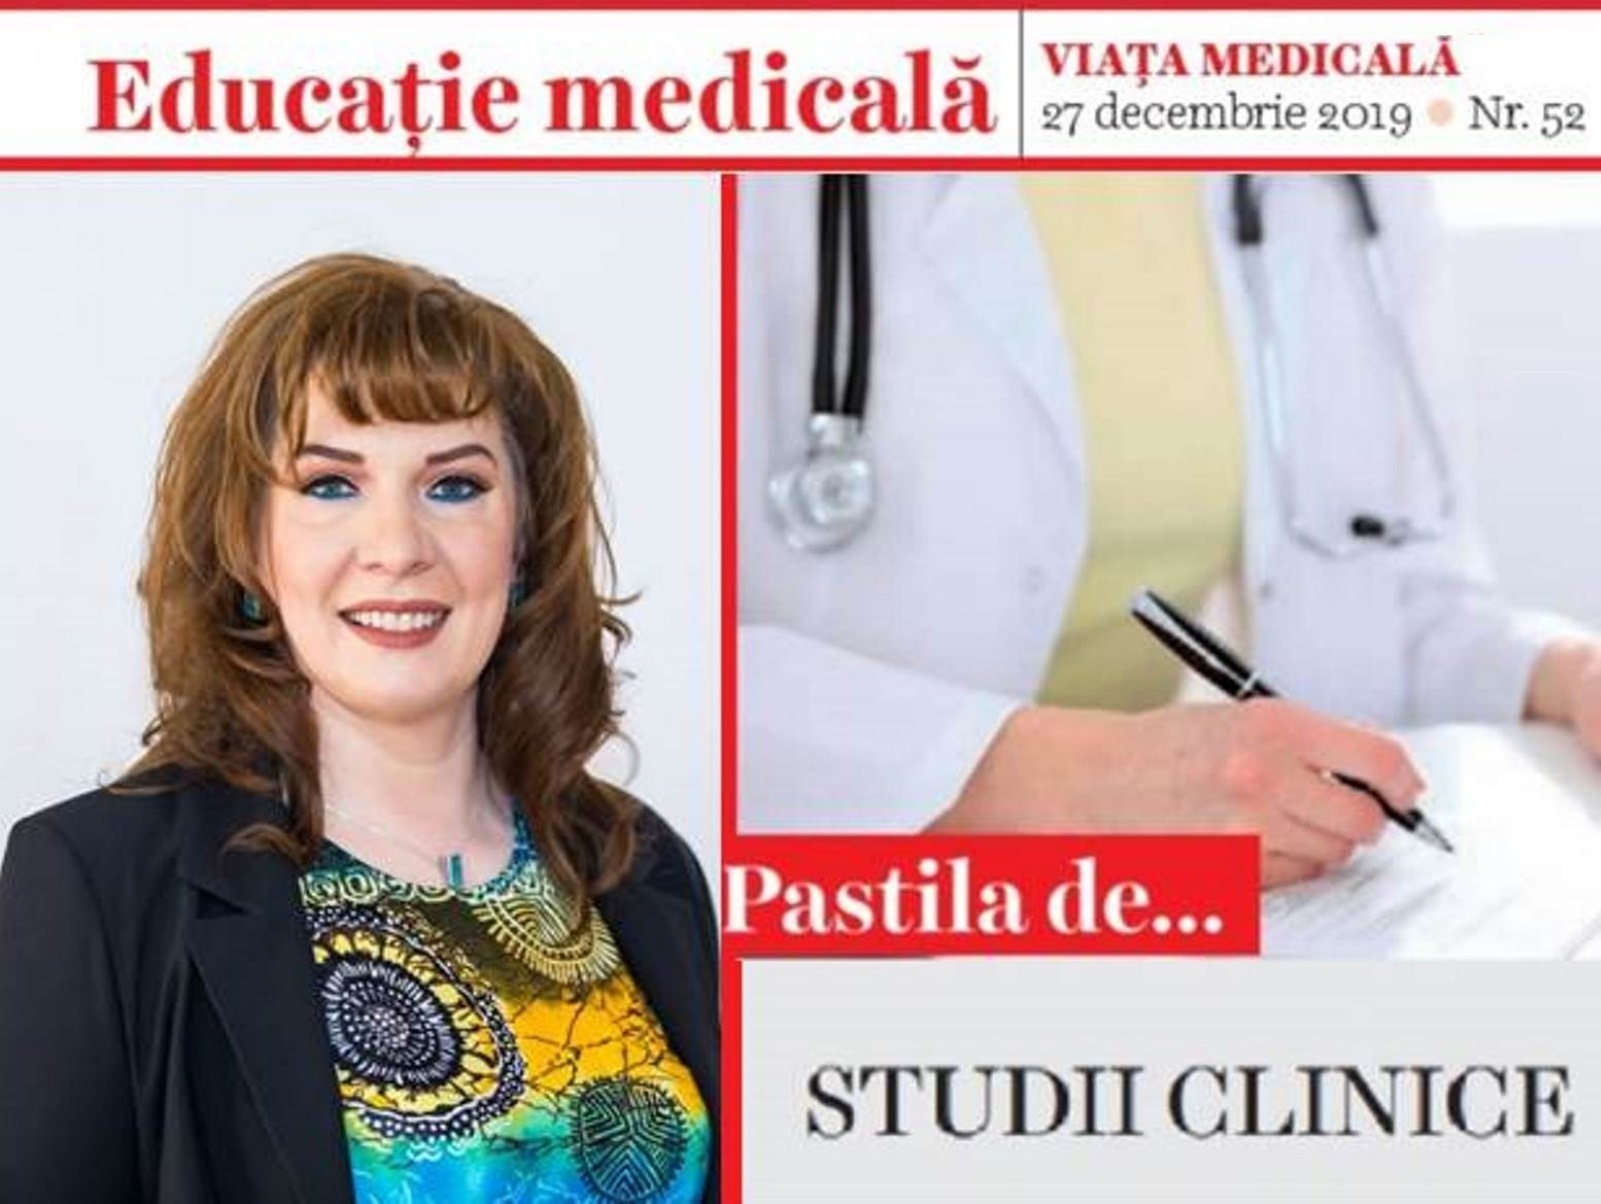 We started a series of articles on clinical trials fundamentals & information in Viata Medicala magazine